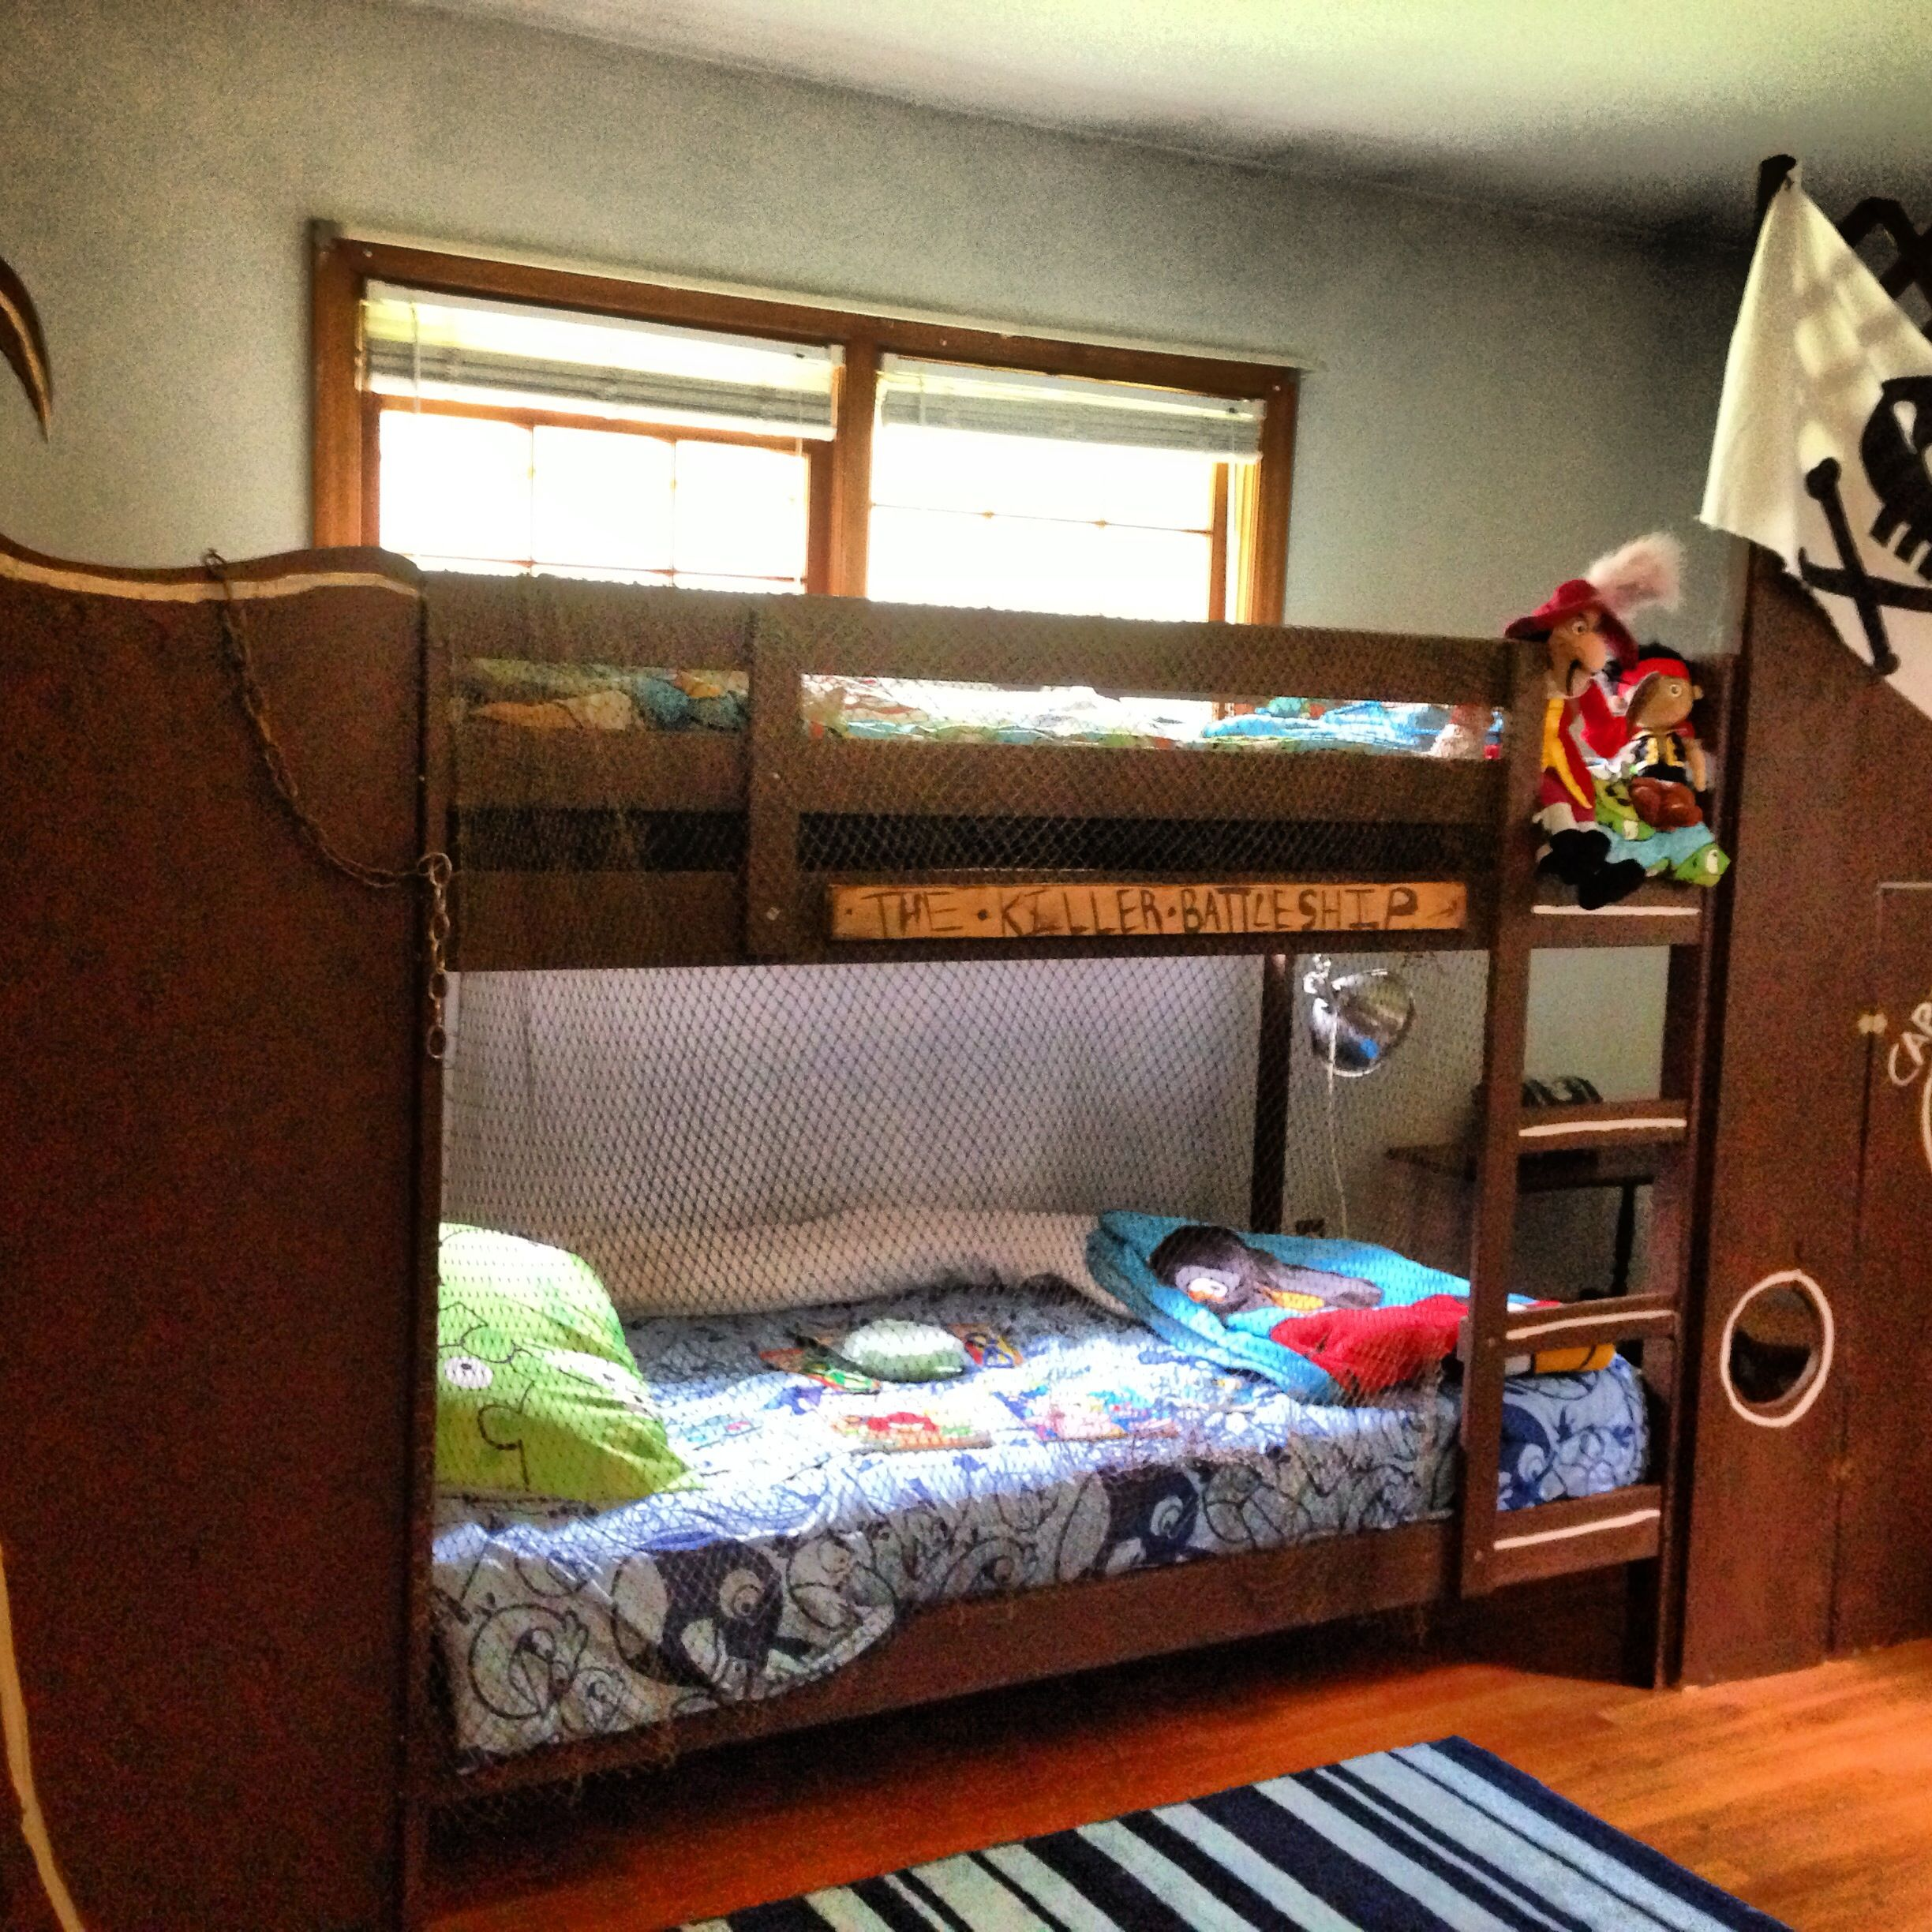 DIY Pirate ship bunk bed DIY Pirate